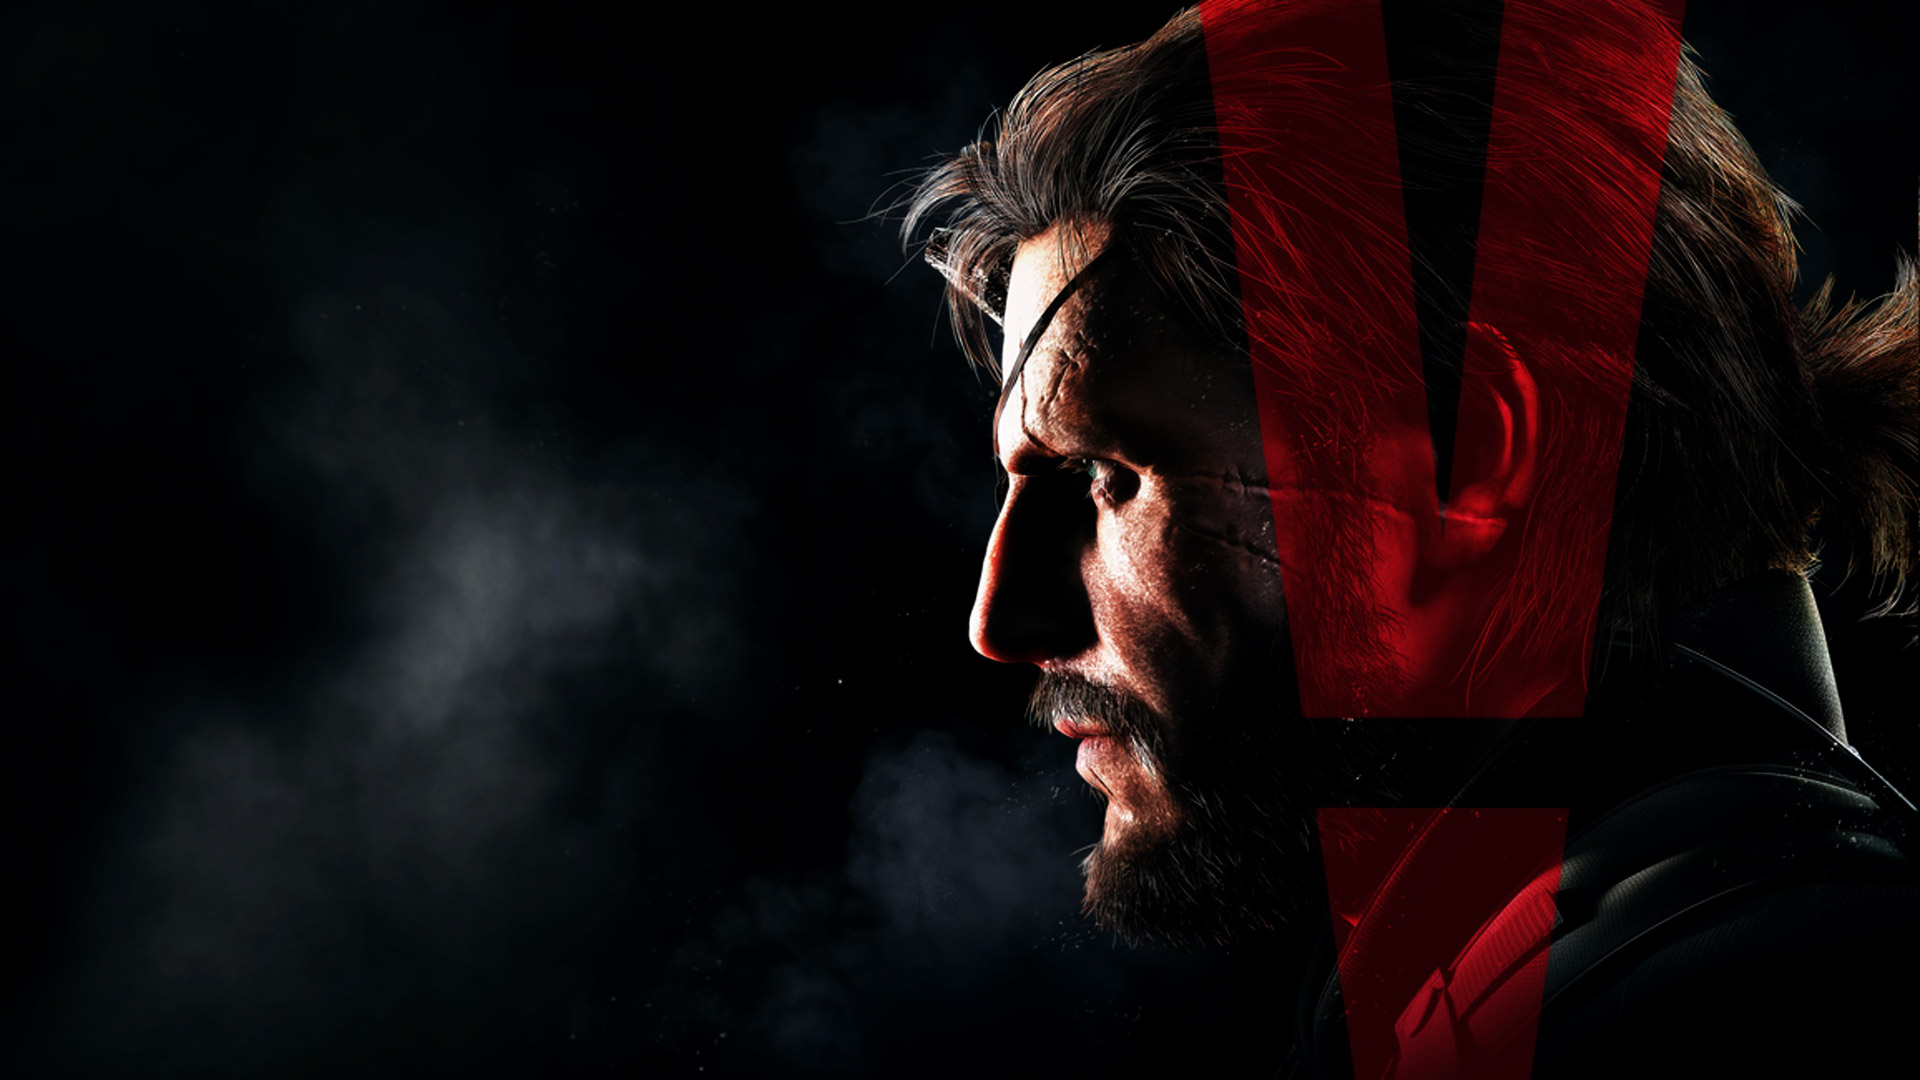 metal gear solid v the phantom pain wallpaper